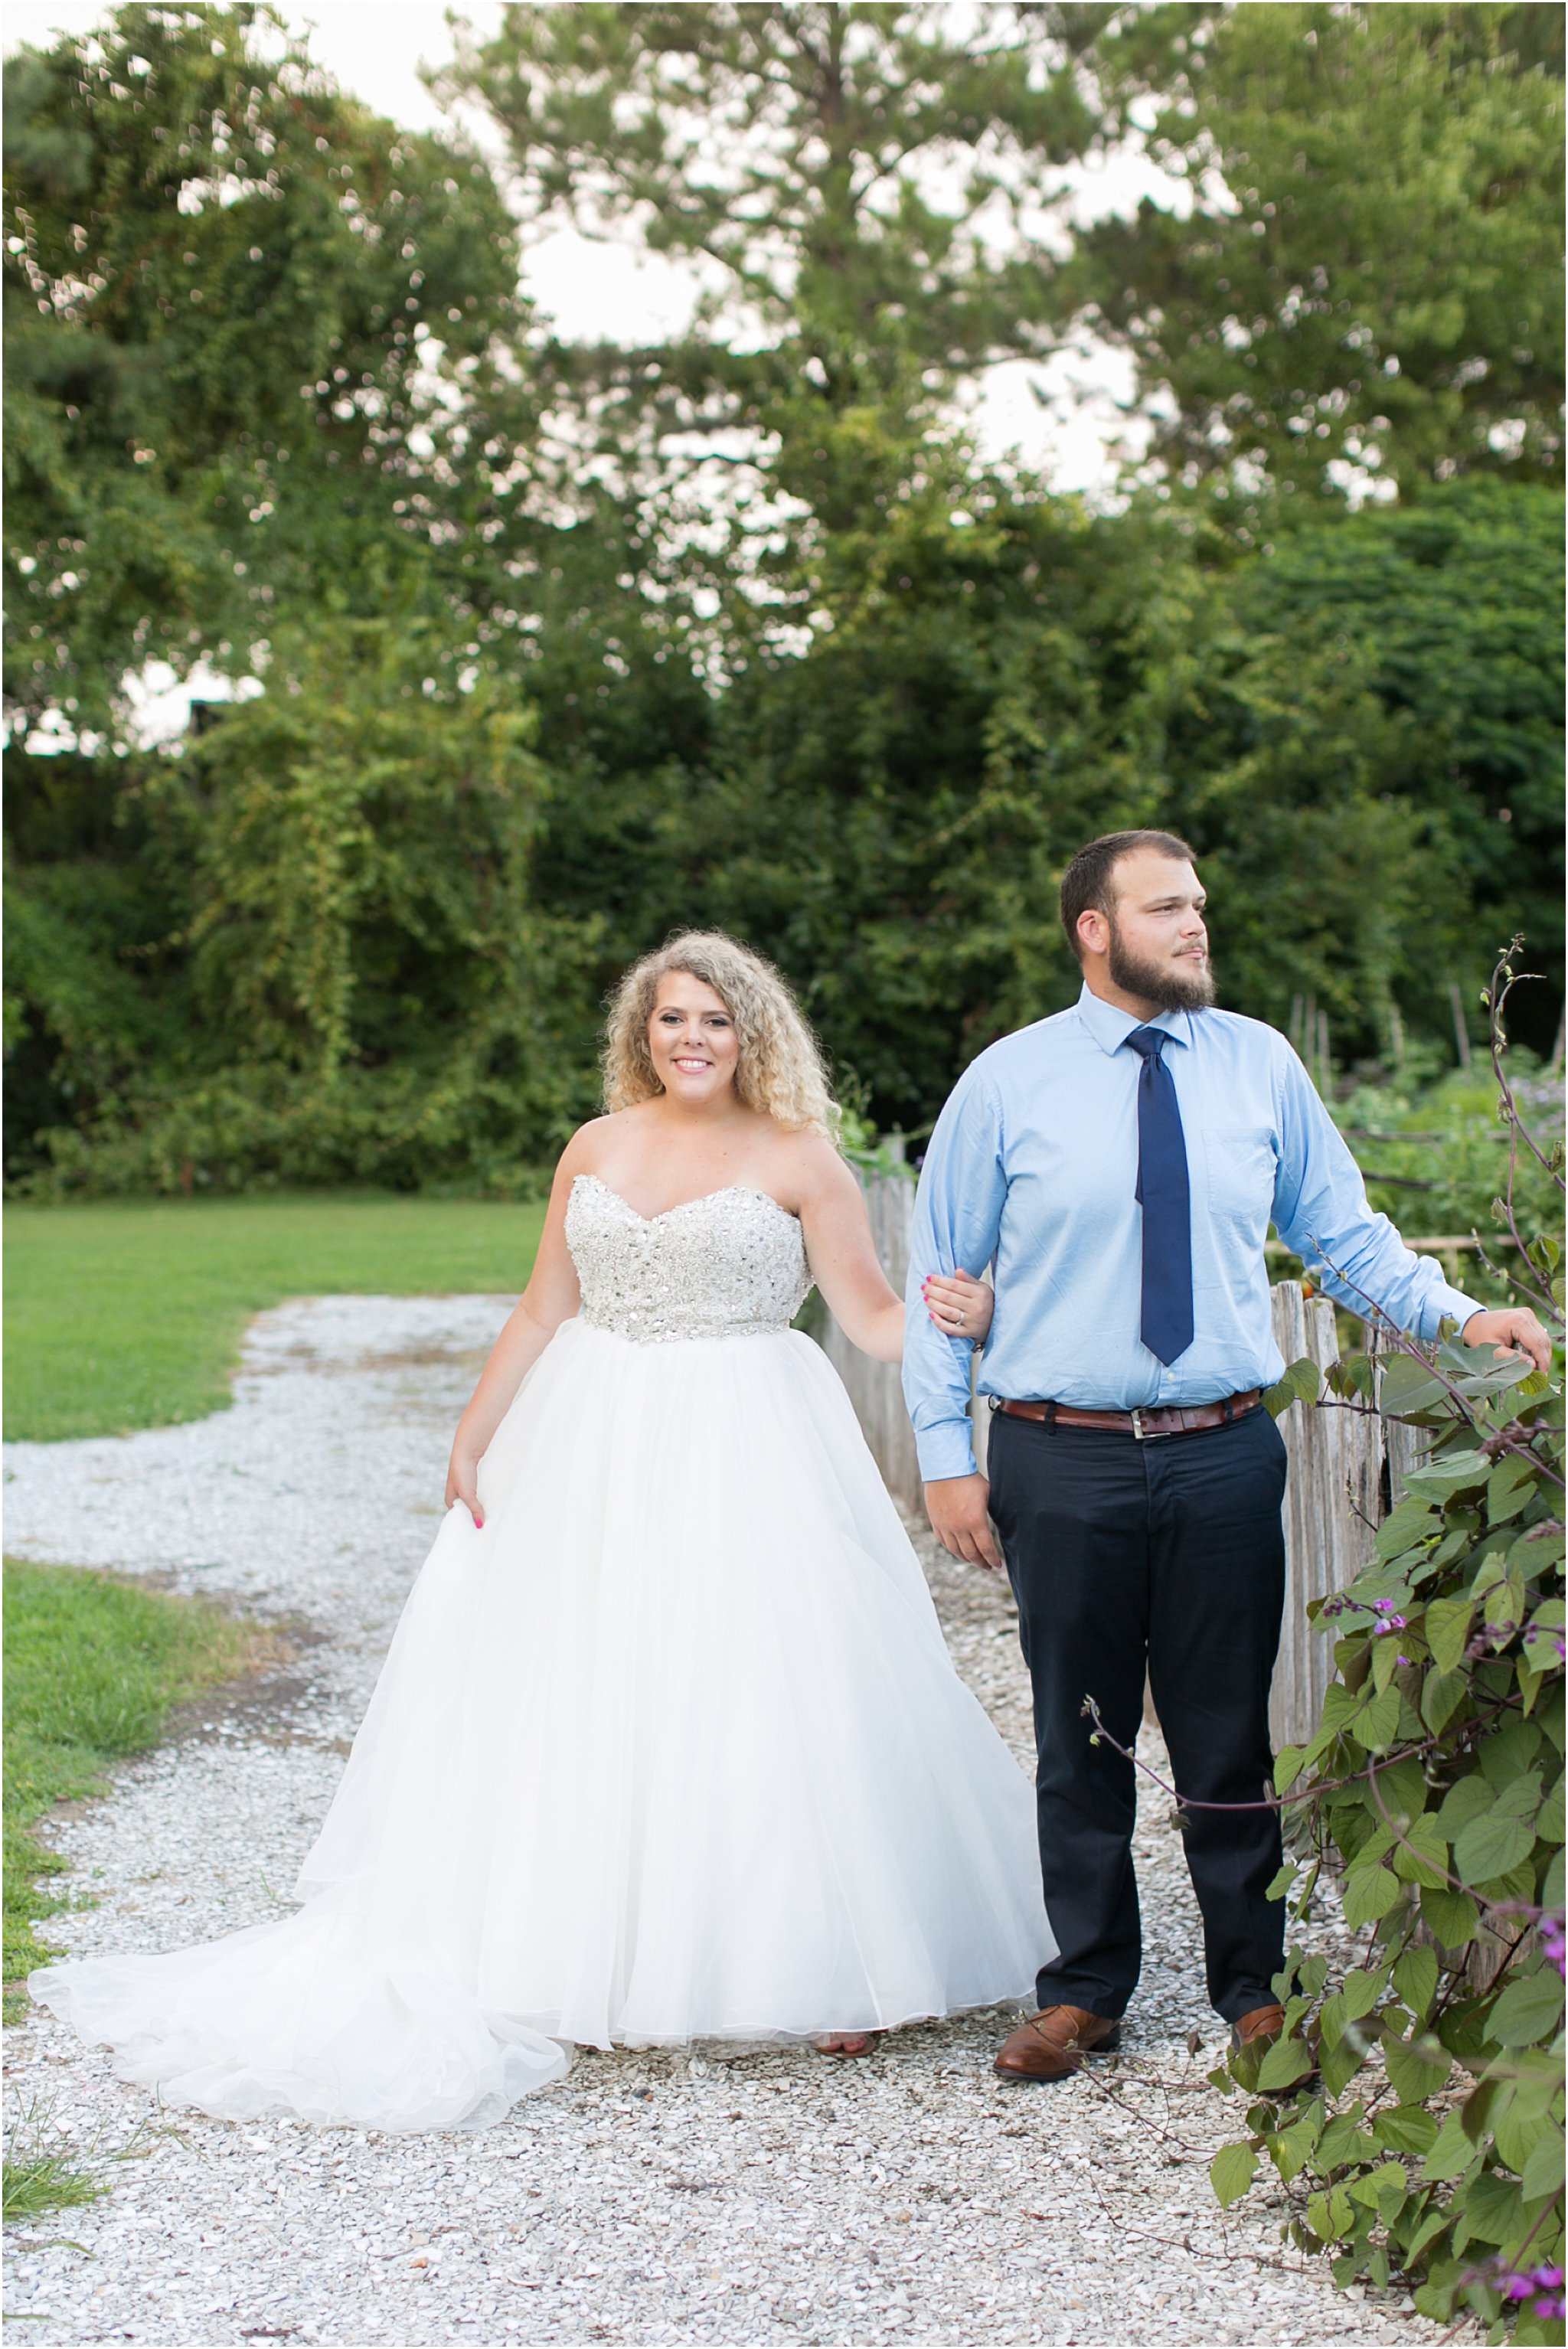 jessica_ryan_photography_virginia_virginia_beach_francis_land_house_portraits_anniversary_portraits_bride_and_groom_beloved_historical_home_wedding_2696